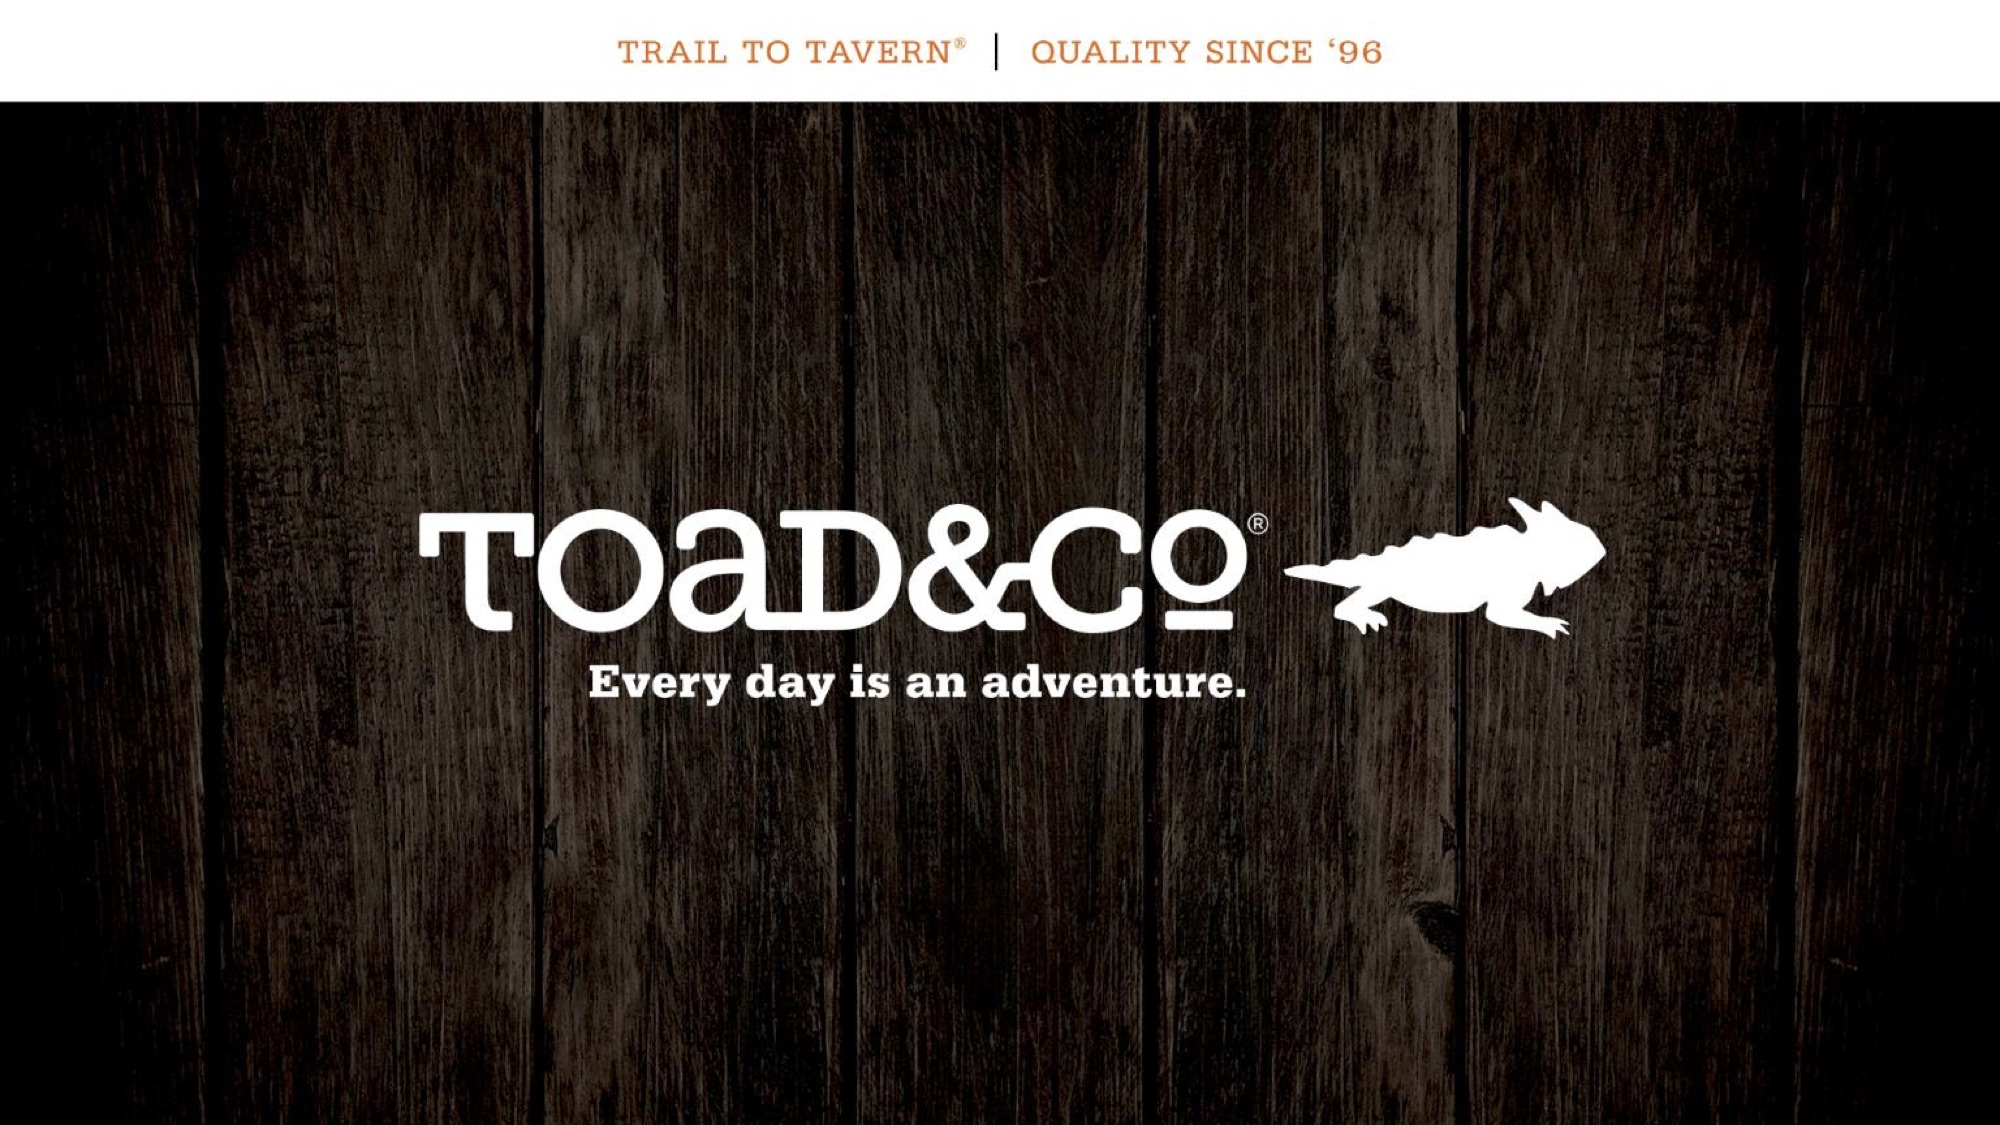 Toad&Co Trail to Tavern Event .jpg